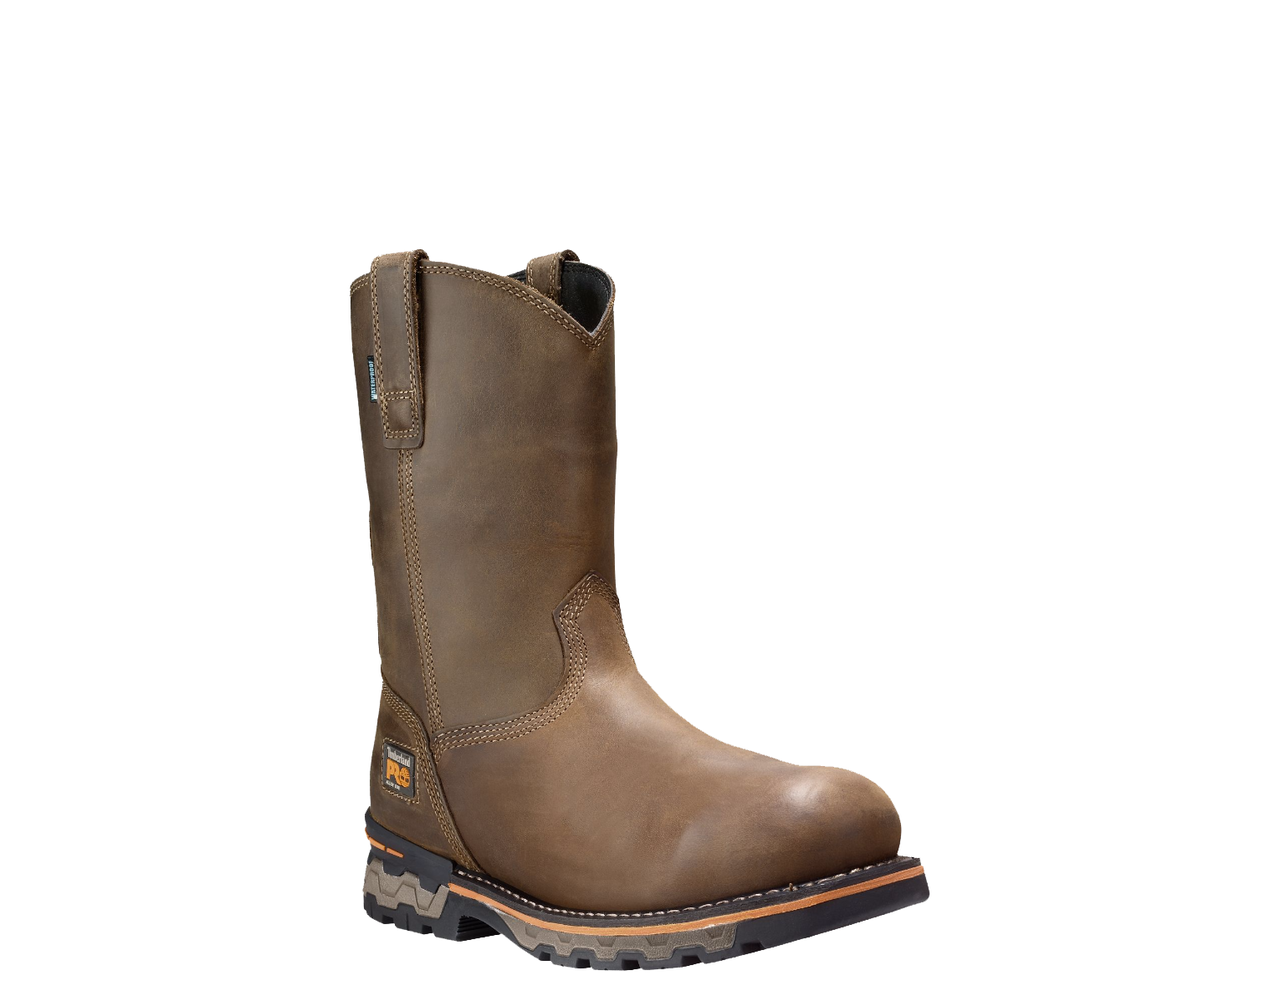 a5534a165e4 Timberland Pro AG Boss LB Alloy Toe Pull-on Work Boots